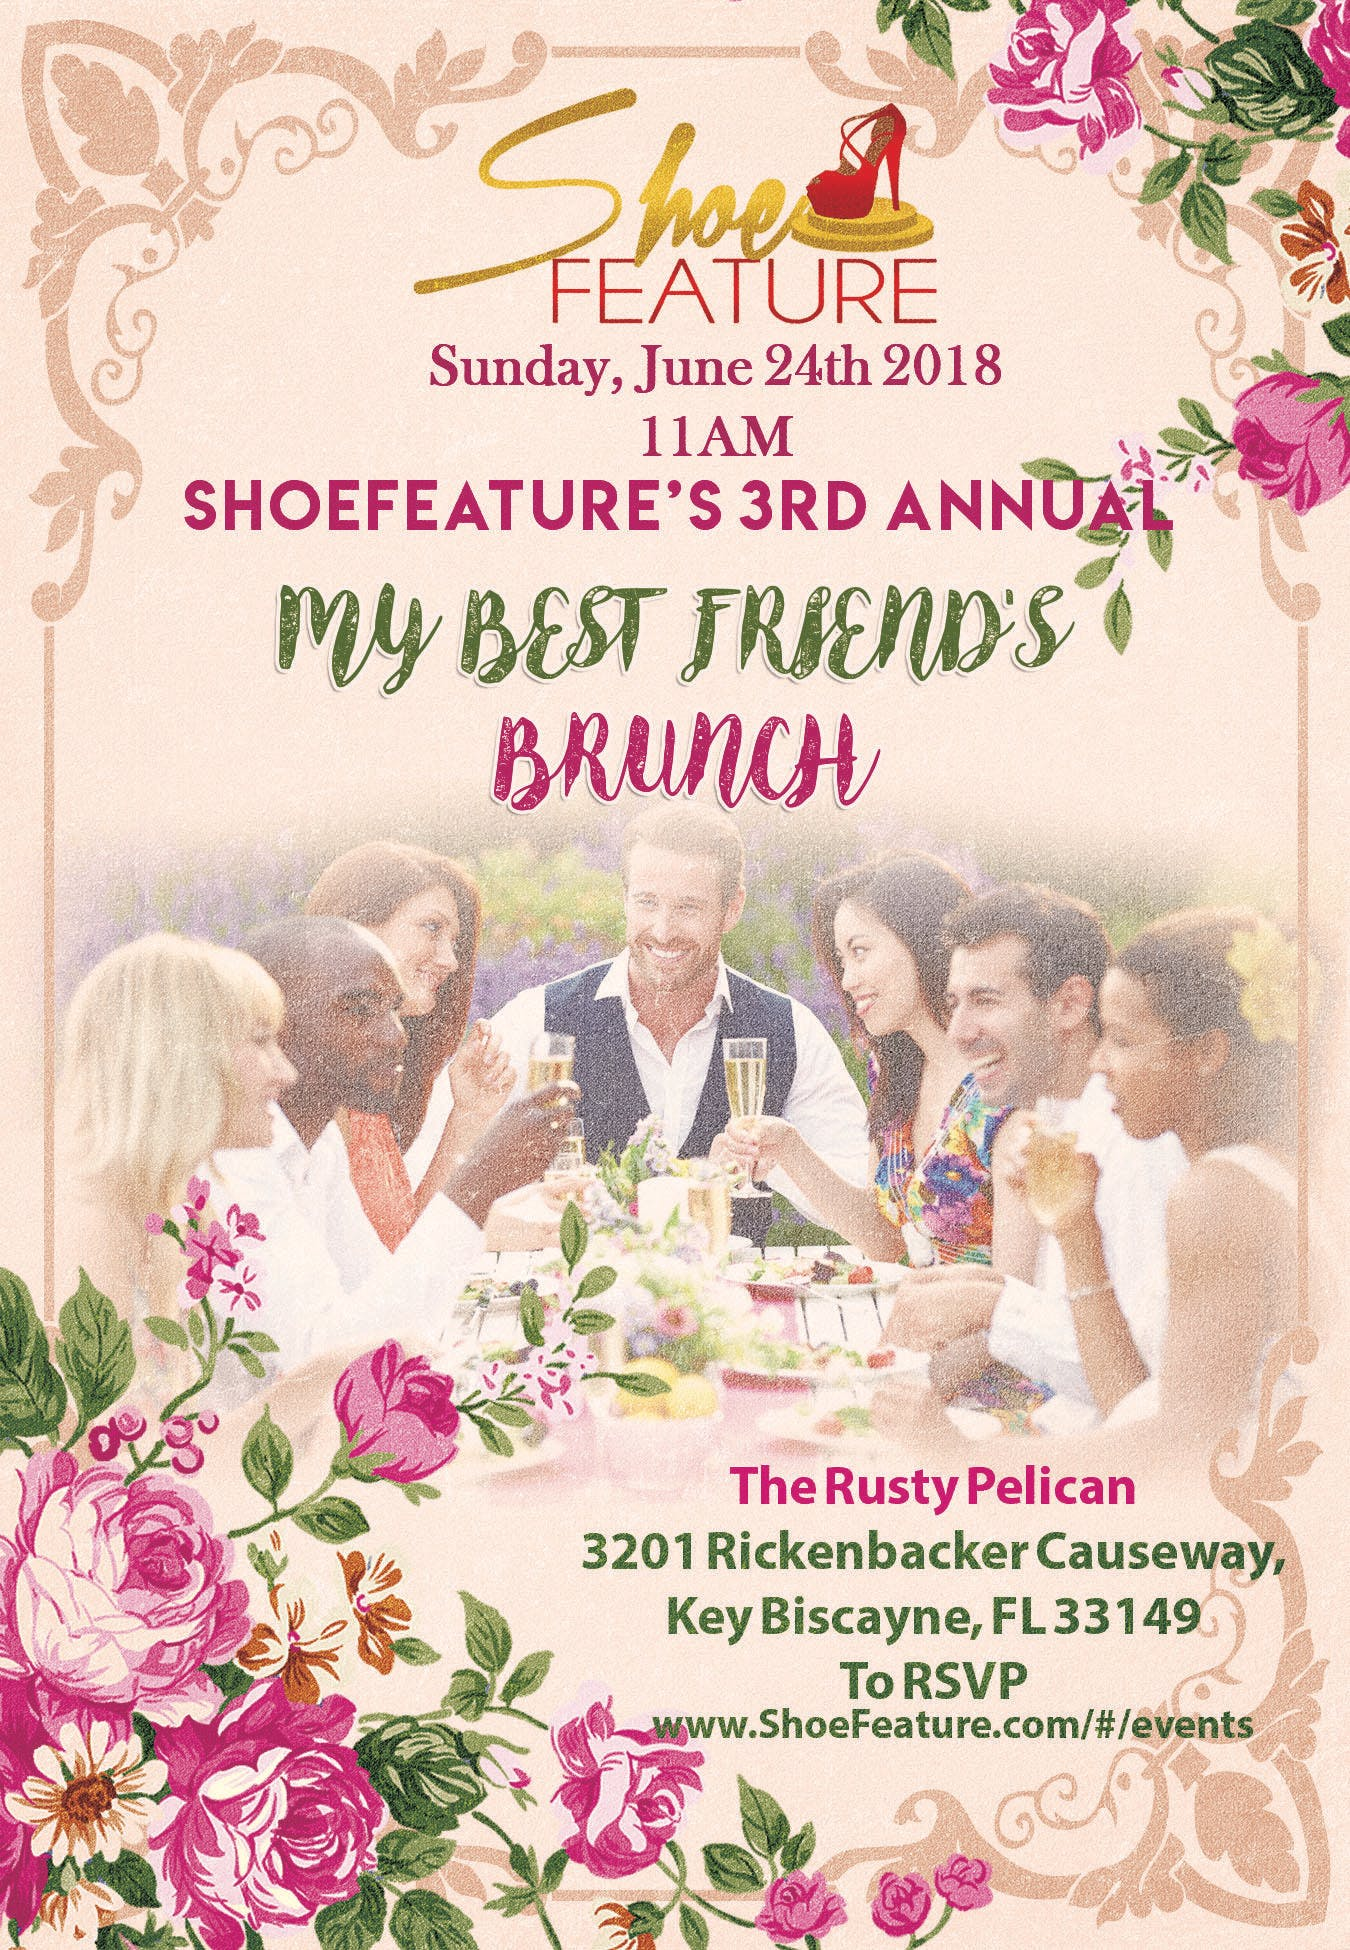 ShoeFeature presents MY BEST FRIEND'S BRUNCH